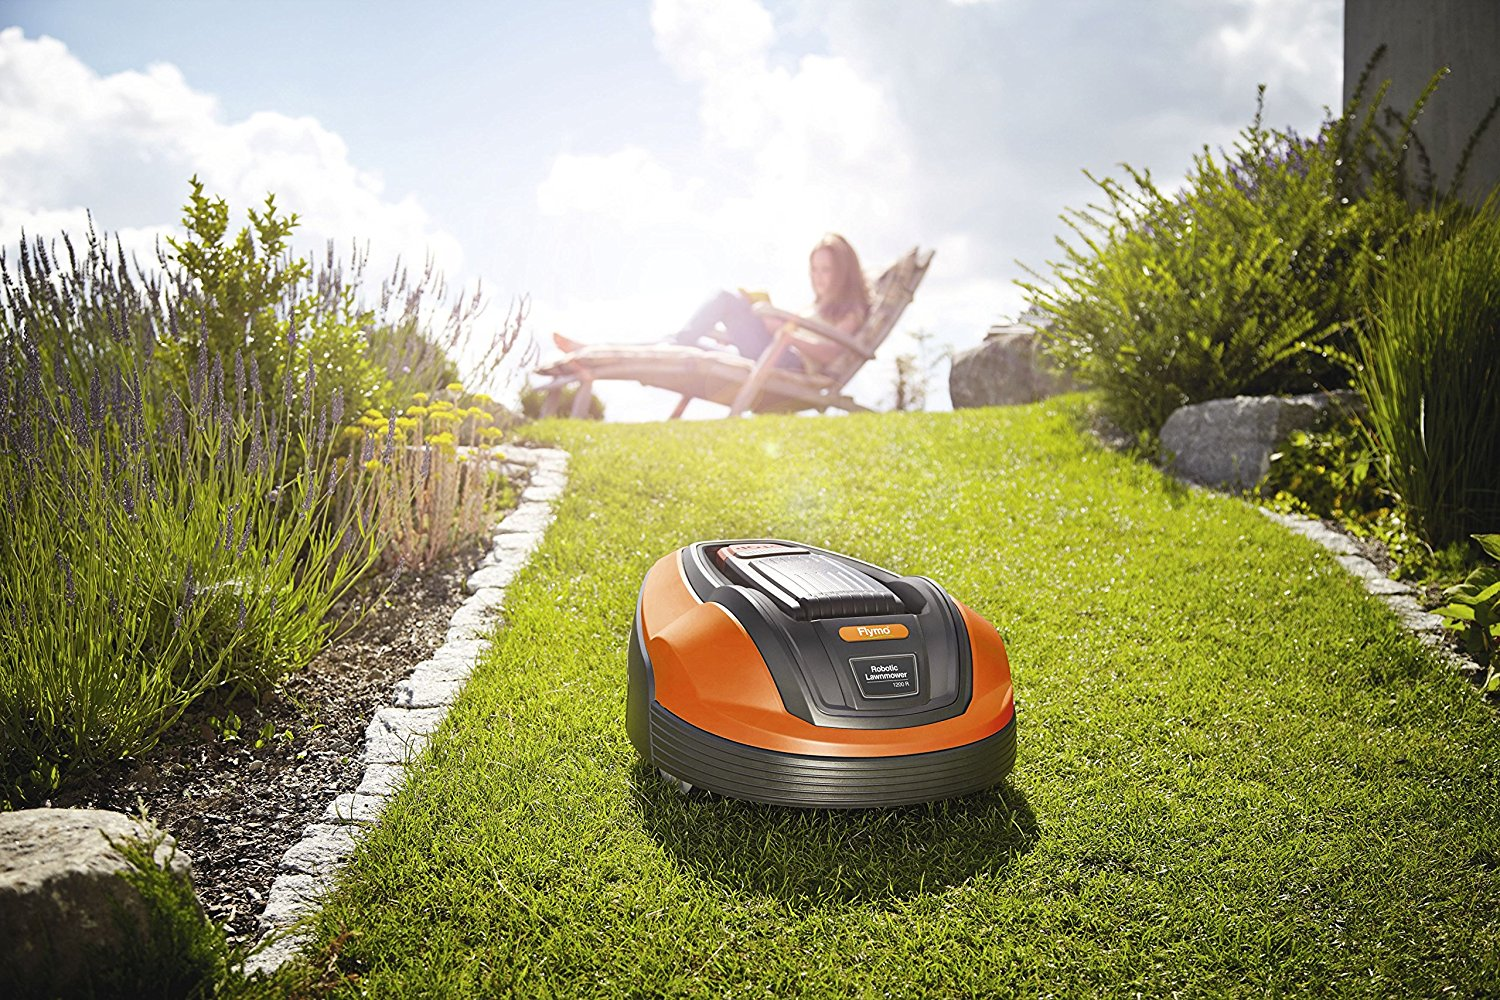 Best Lawnmower 2020 – Electric and Petrol